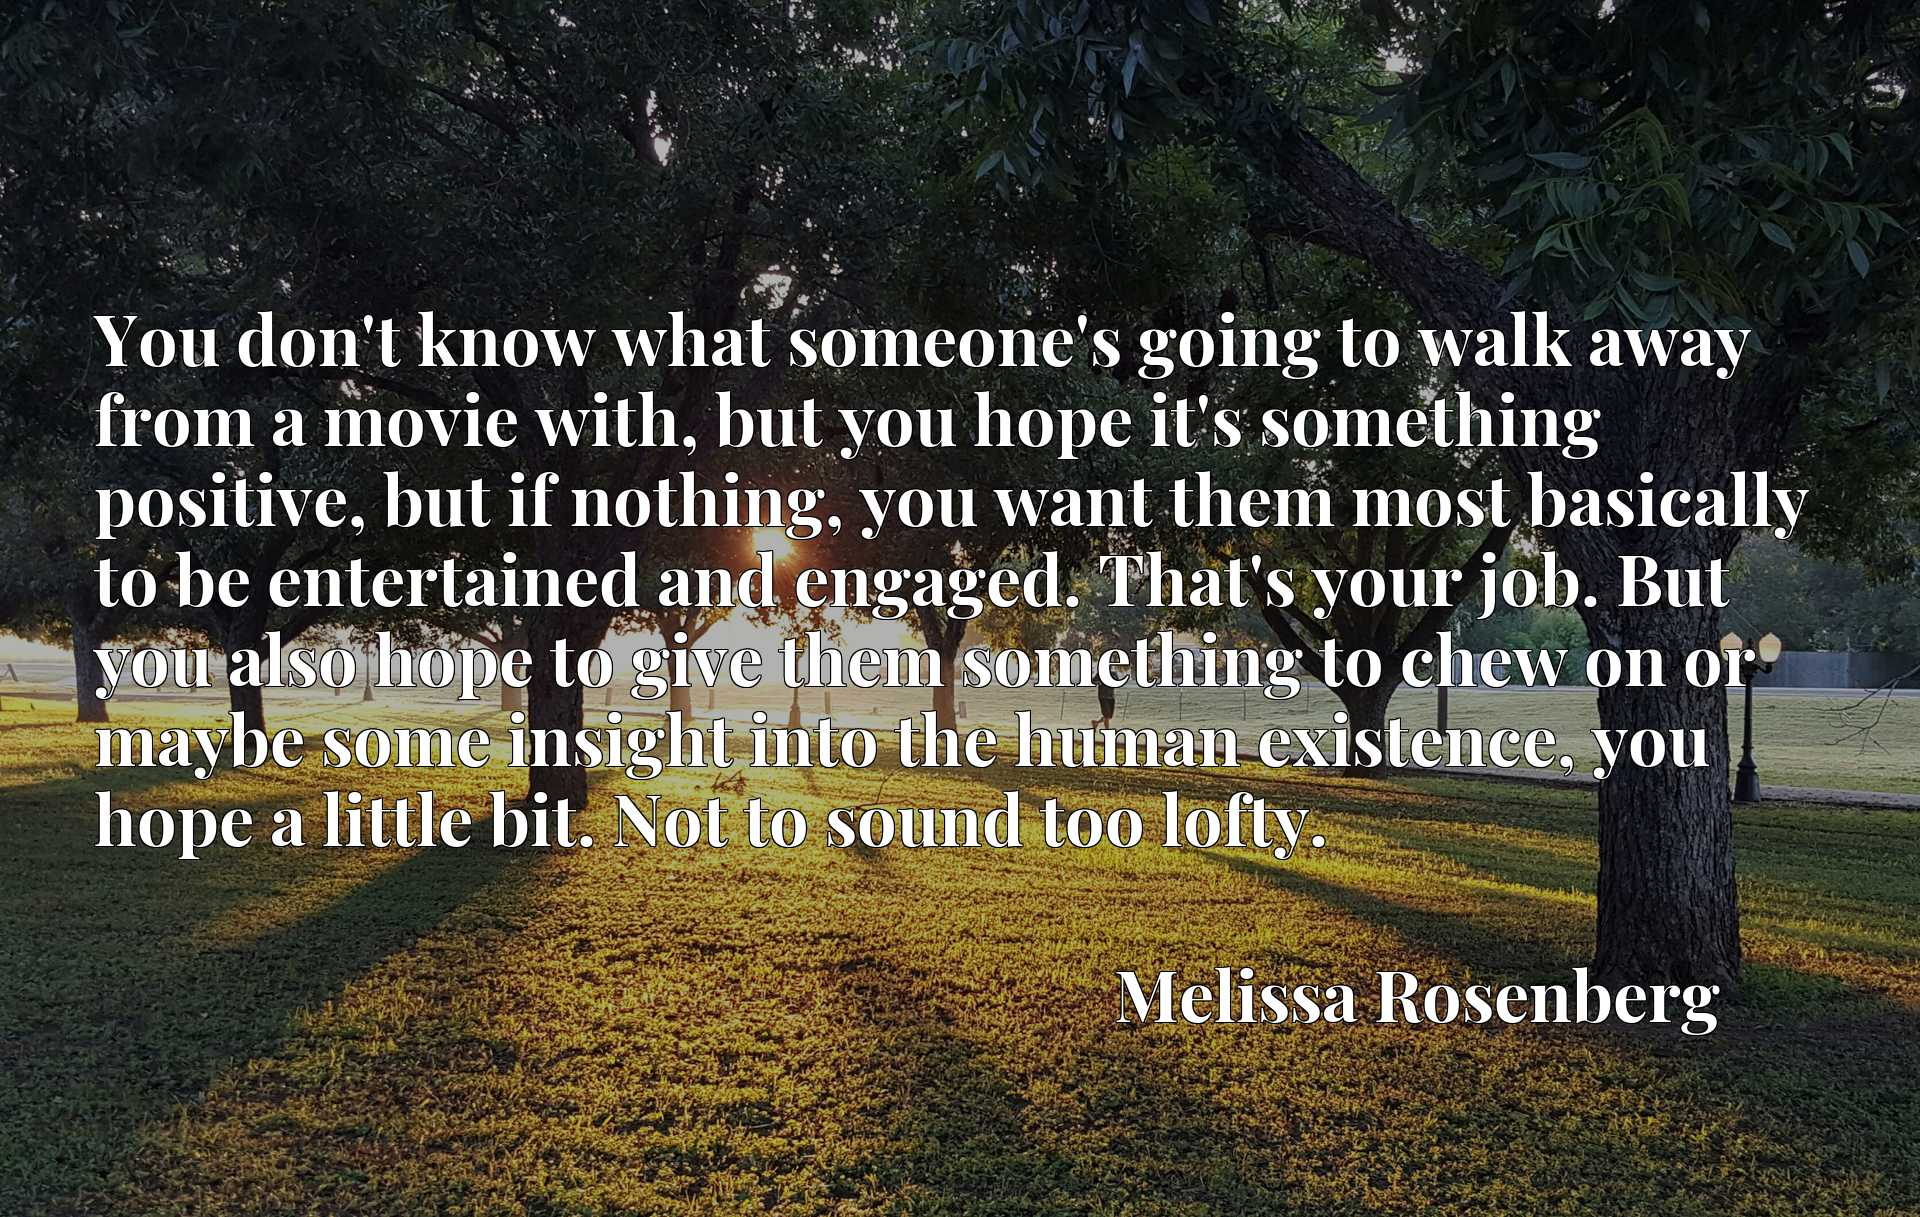 You don't know what someone's going to walk away from a movie with, but you hope it's something positive, but if nothing, you want them most basically to be entertained and engaged. That's your job. But you also hope to give them something to chew on or maybe some insight into the human existence, you hope a little bit. Not to sound too lofty.